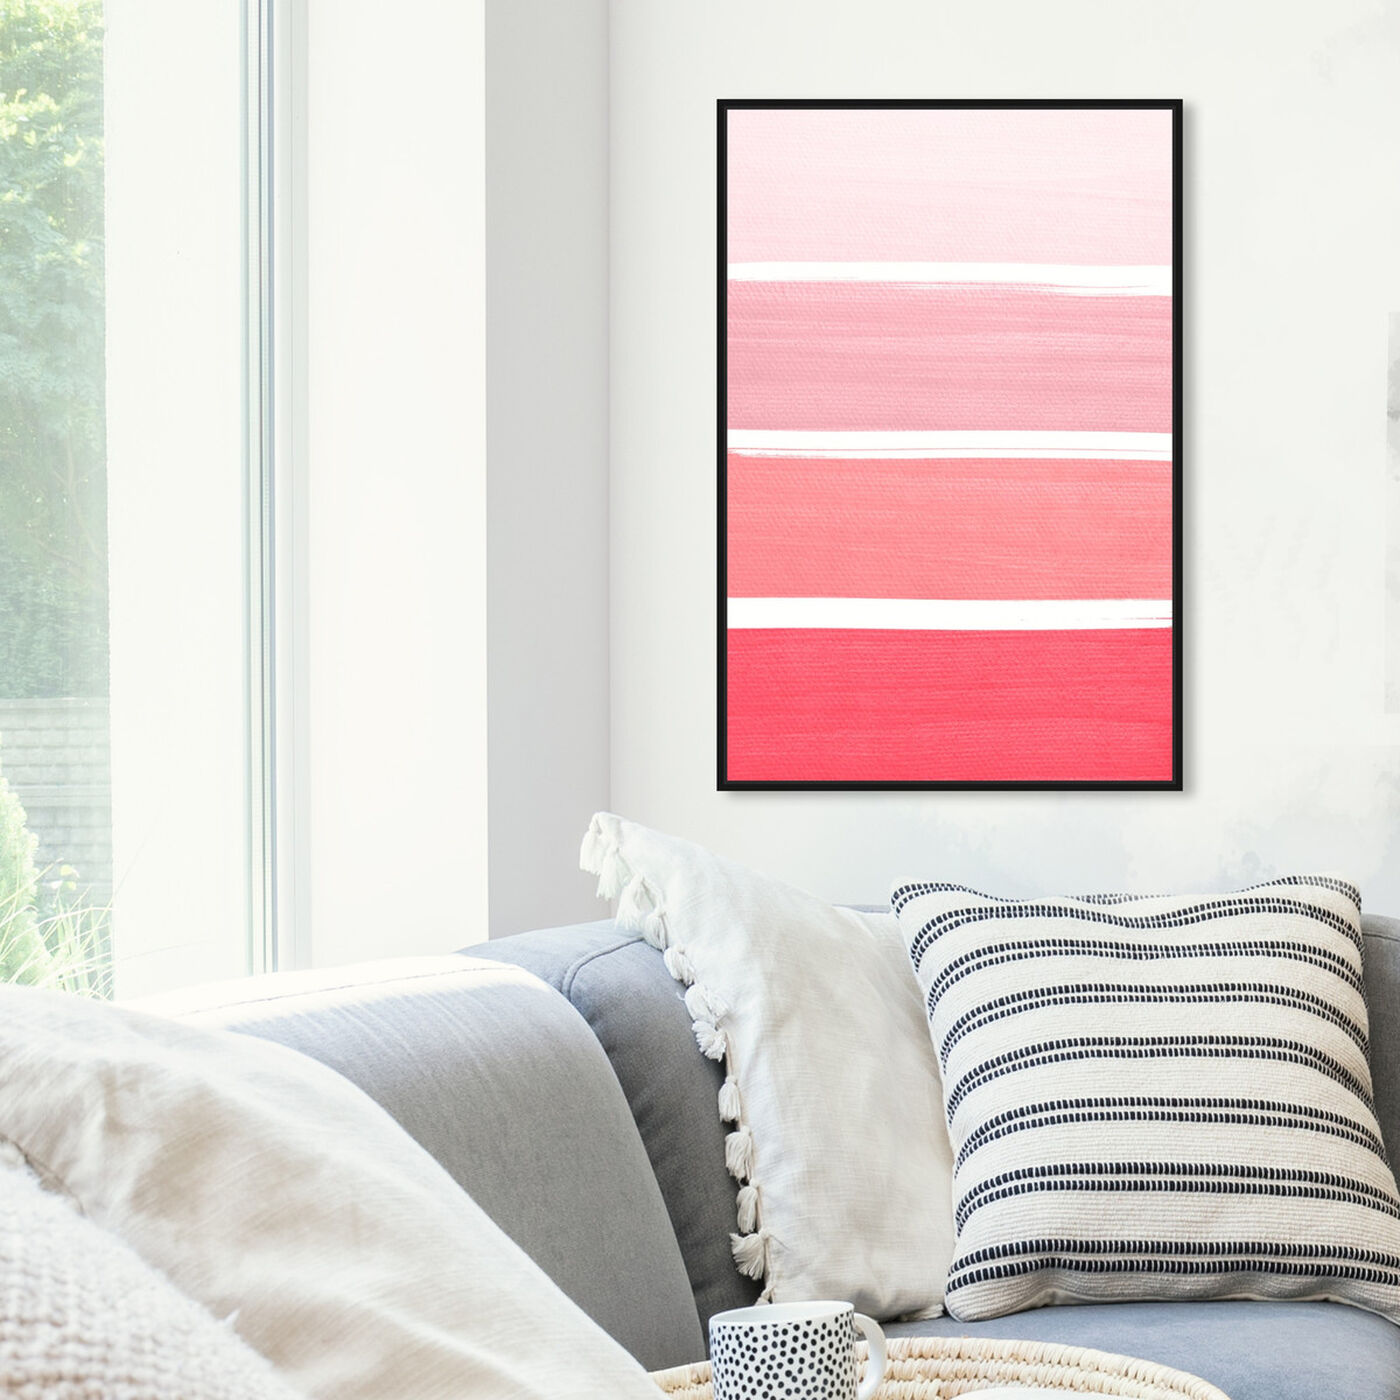 Hanging view of The Right Shade of Pink featuring abstract and geometric art.